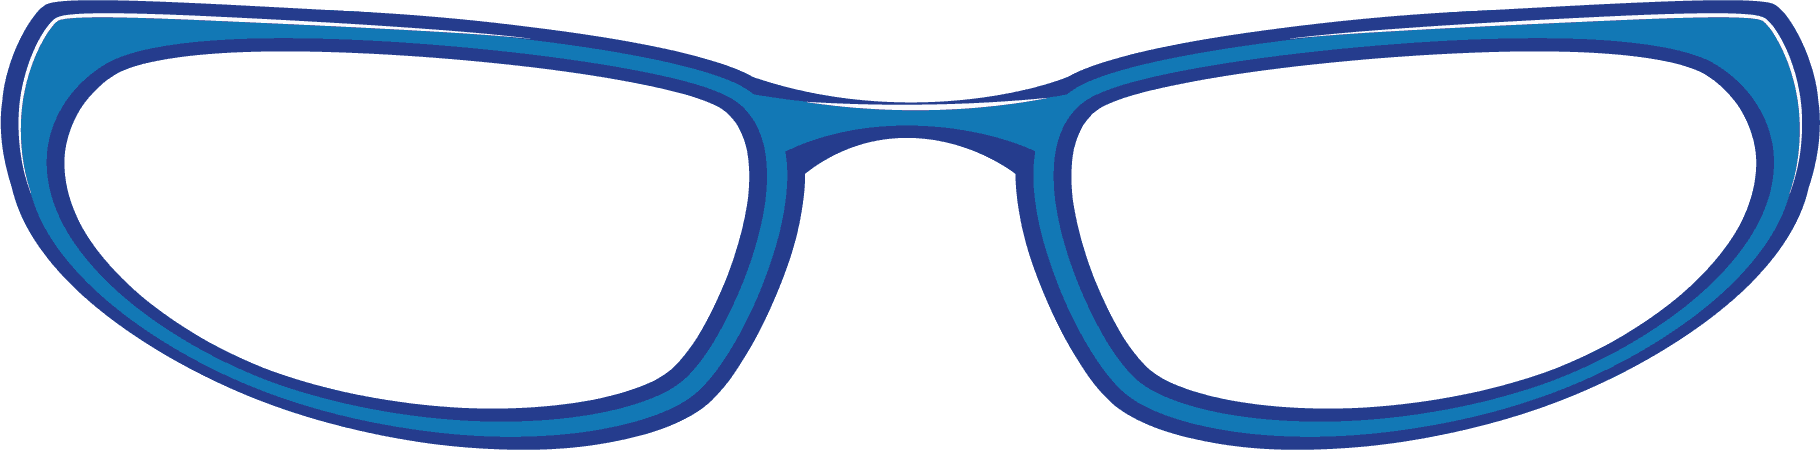 1820x450 Hipster Glasses Clipart Clipart Panda